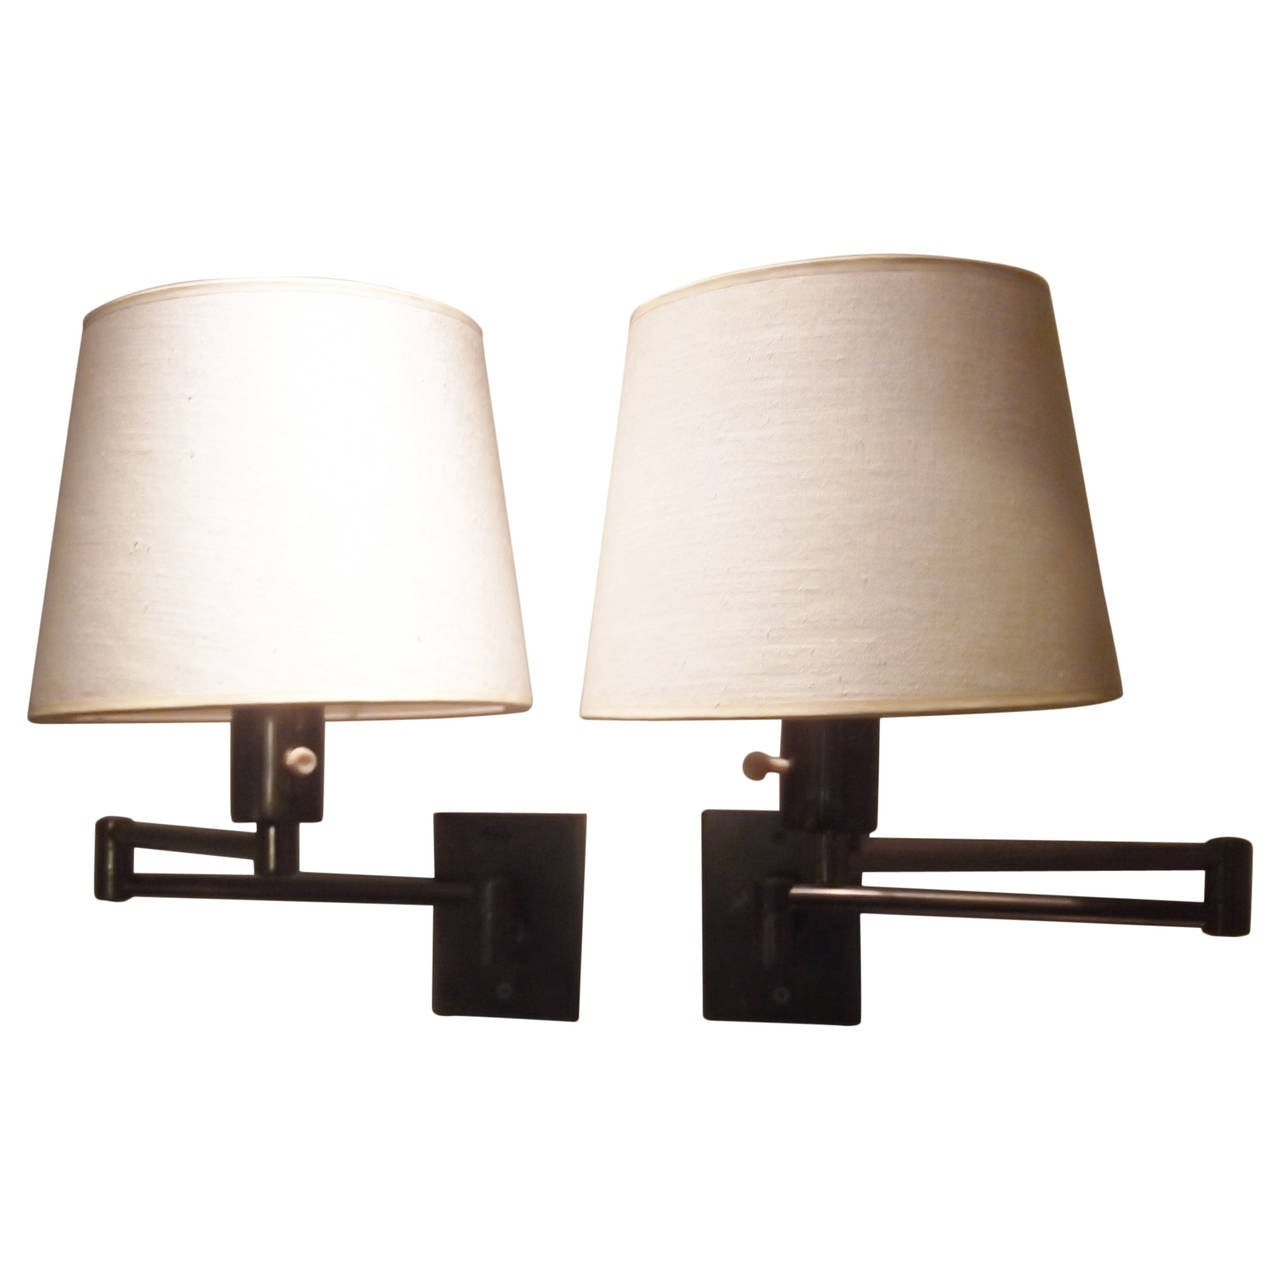 Wall Mounted Lamps With Swing Arms : Pair of Brass Mid Century Hansen Swing Arm Wall-Mounted Lamps at 1stdibs